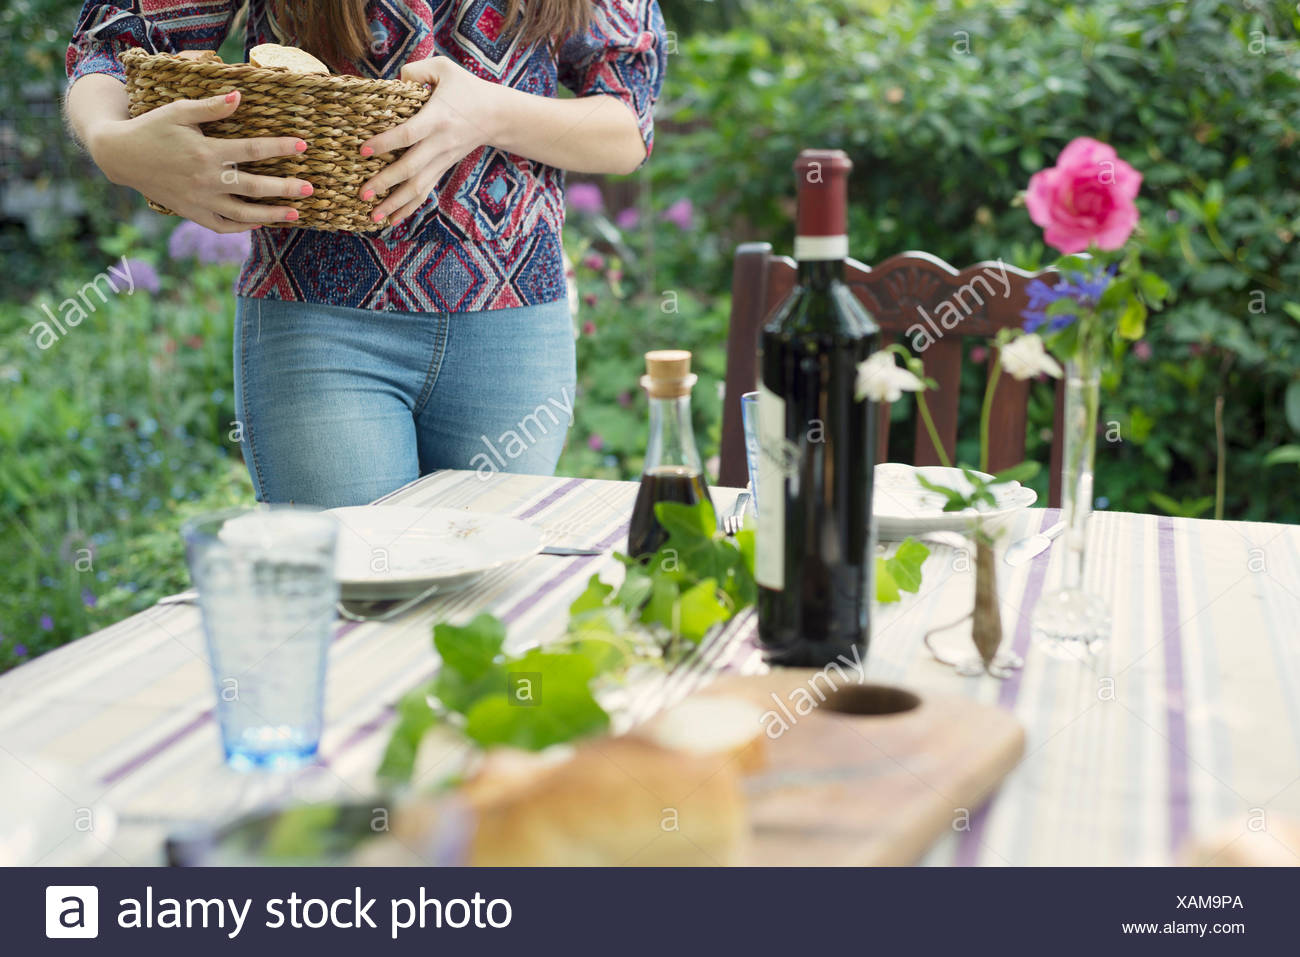 Woman setting the table outdoors - Stock Image